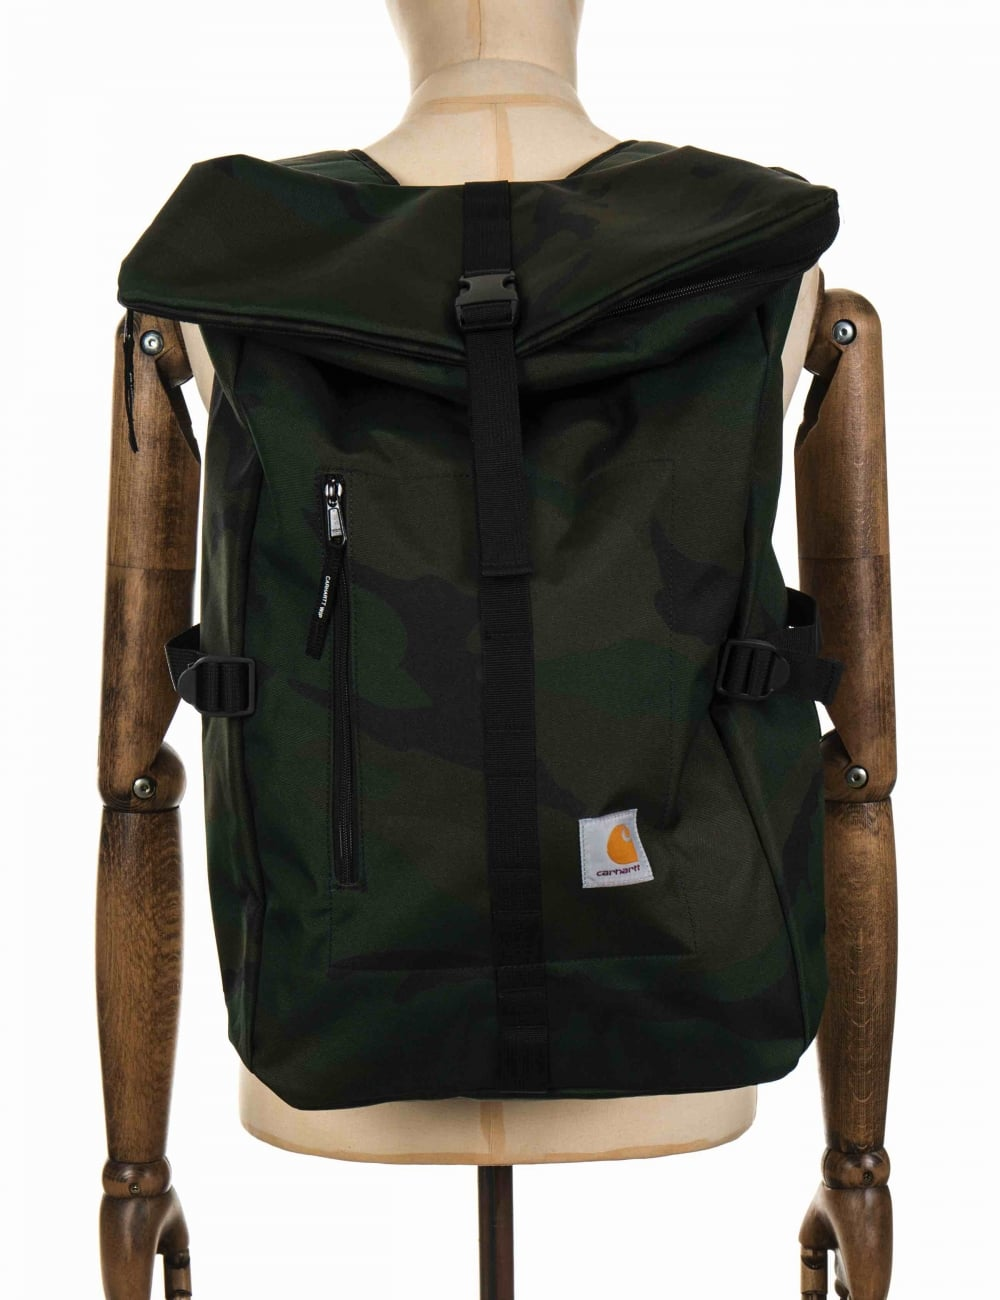 Carhartt WIP Phil Backpack - Camo Combat Green - Accessories from ...